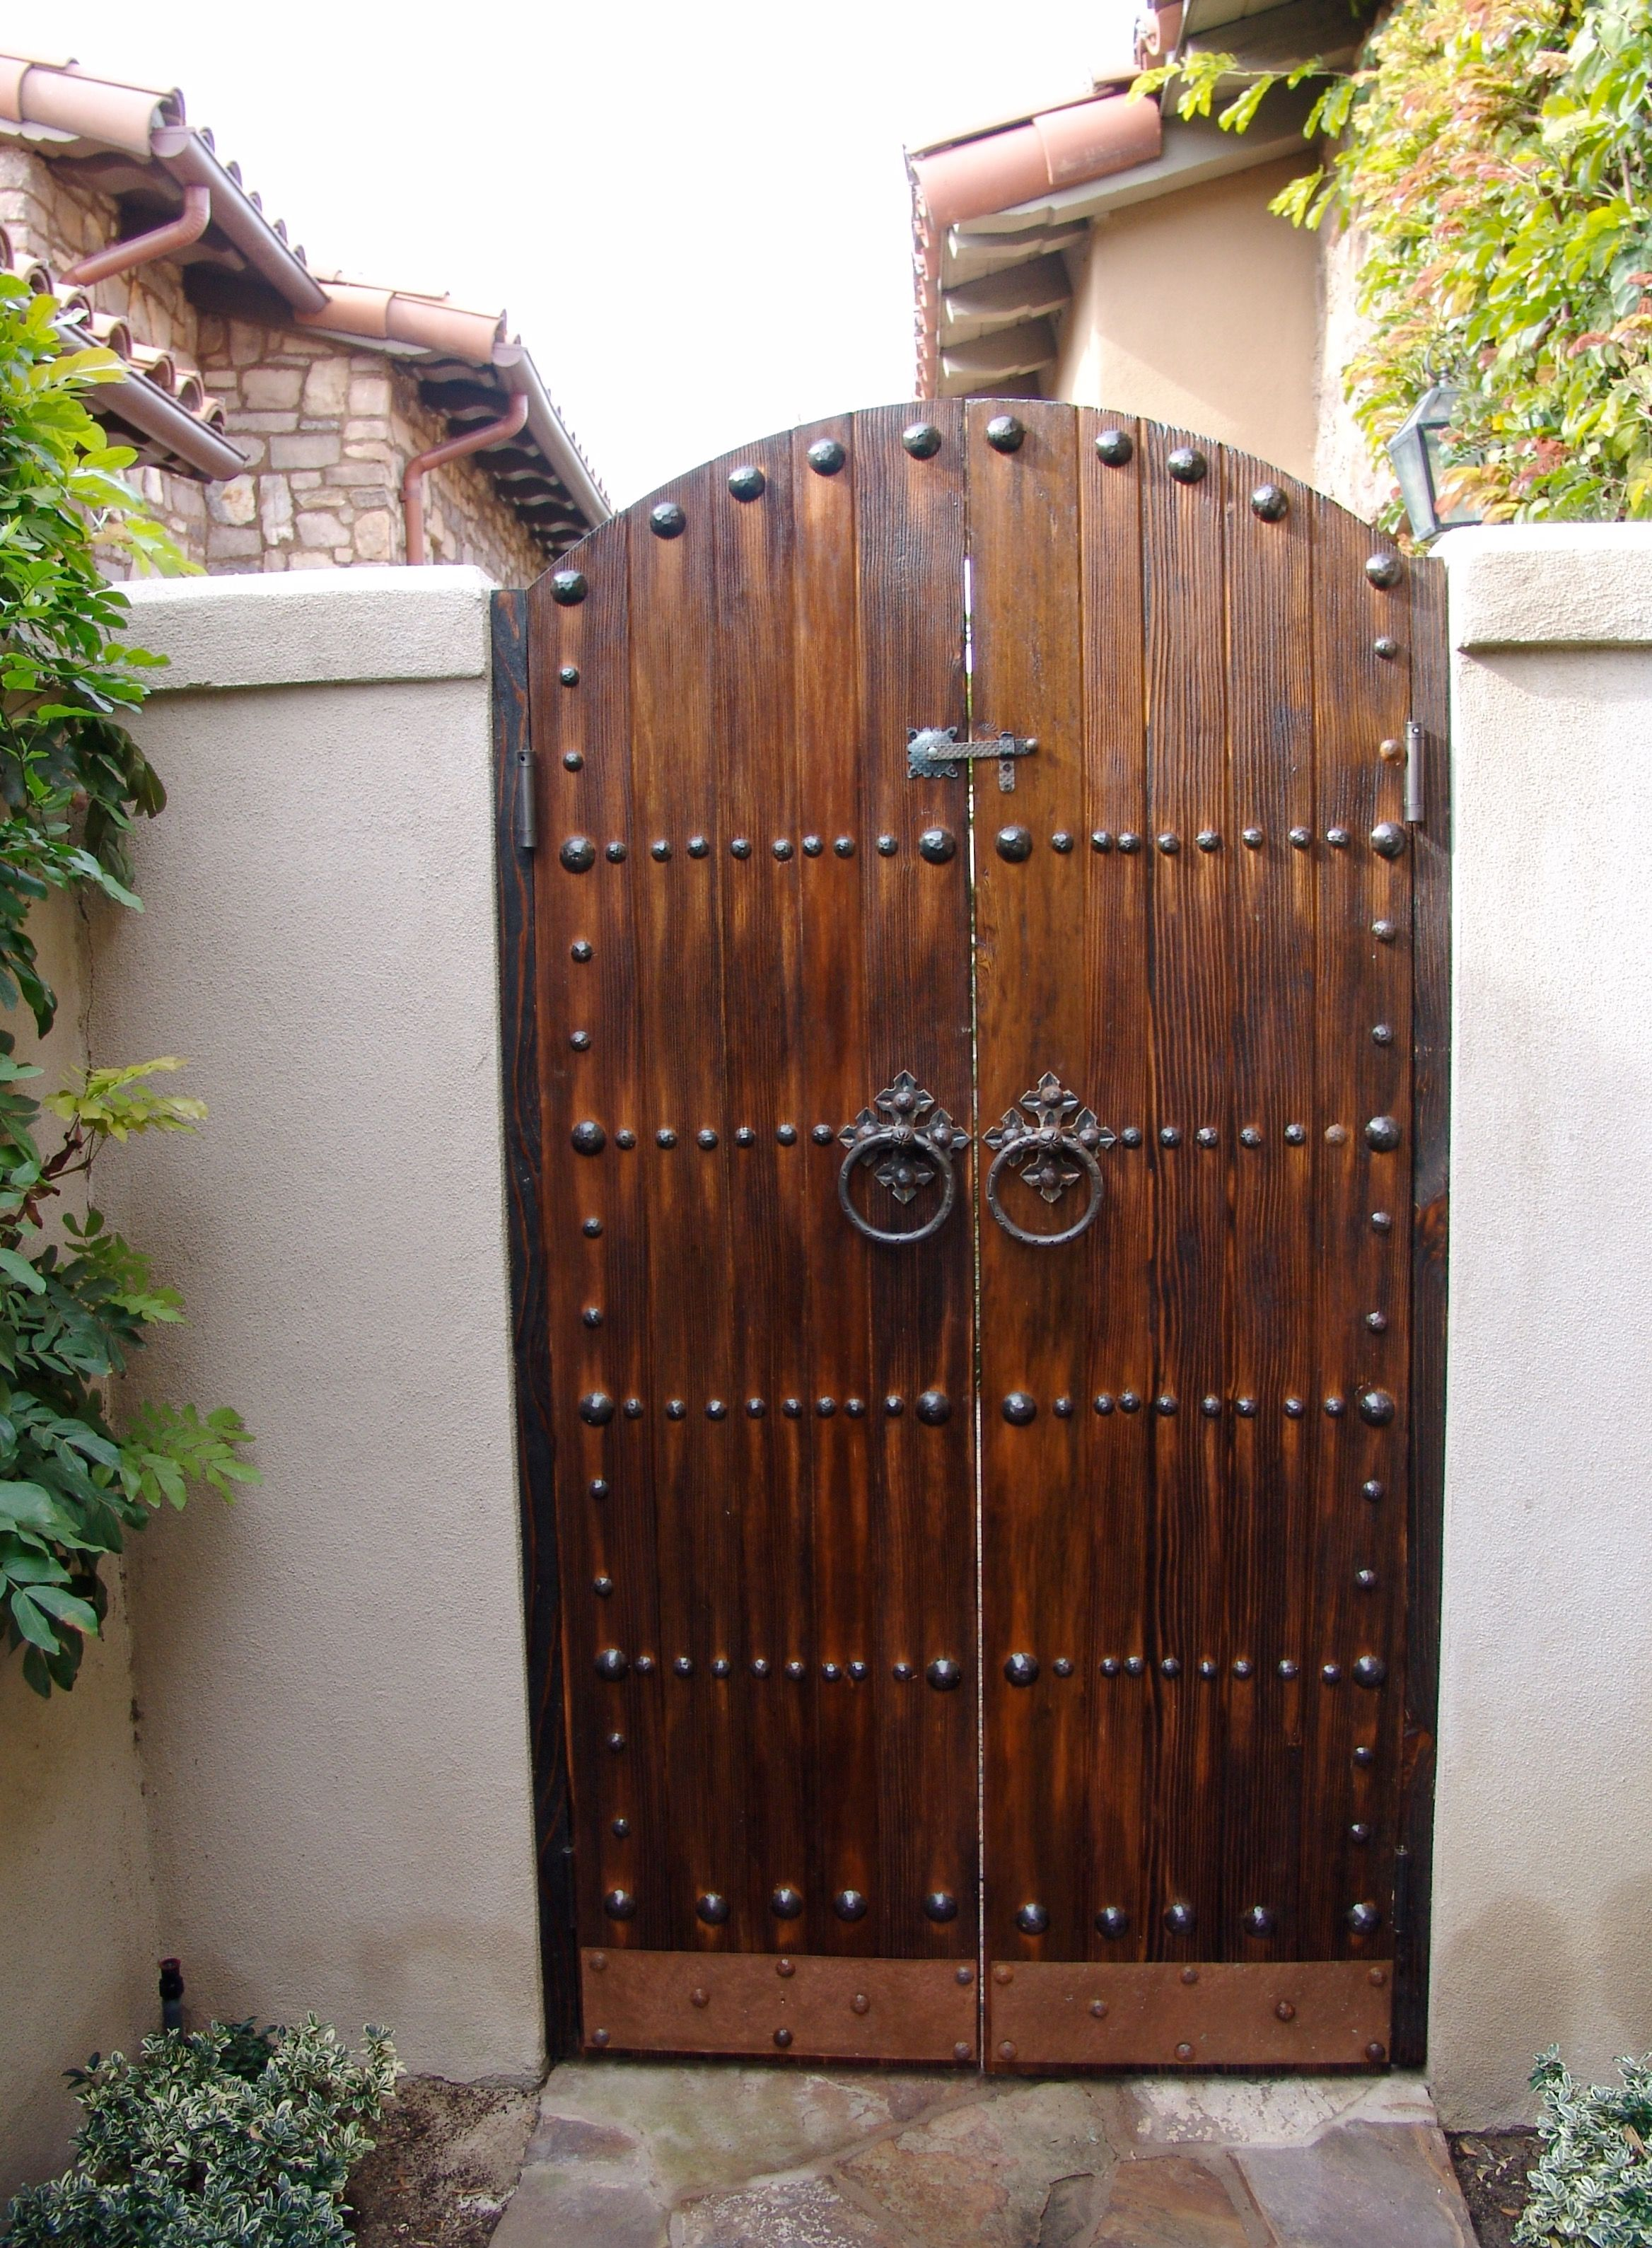 Spanish Style Gates Comprise Dark Wood Or Stains That